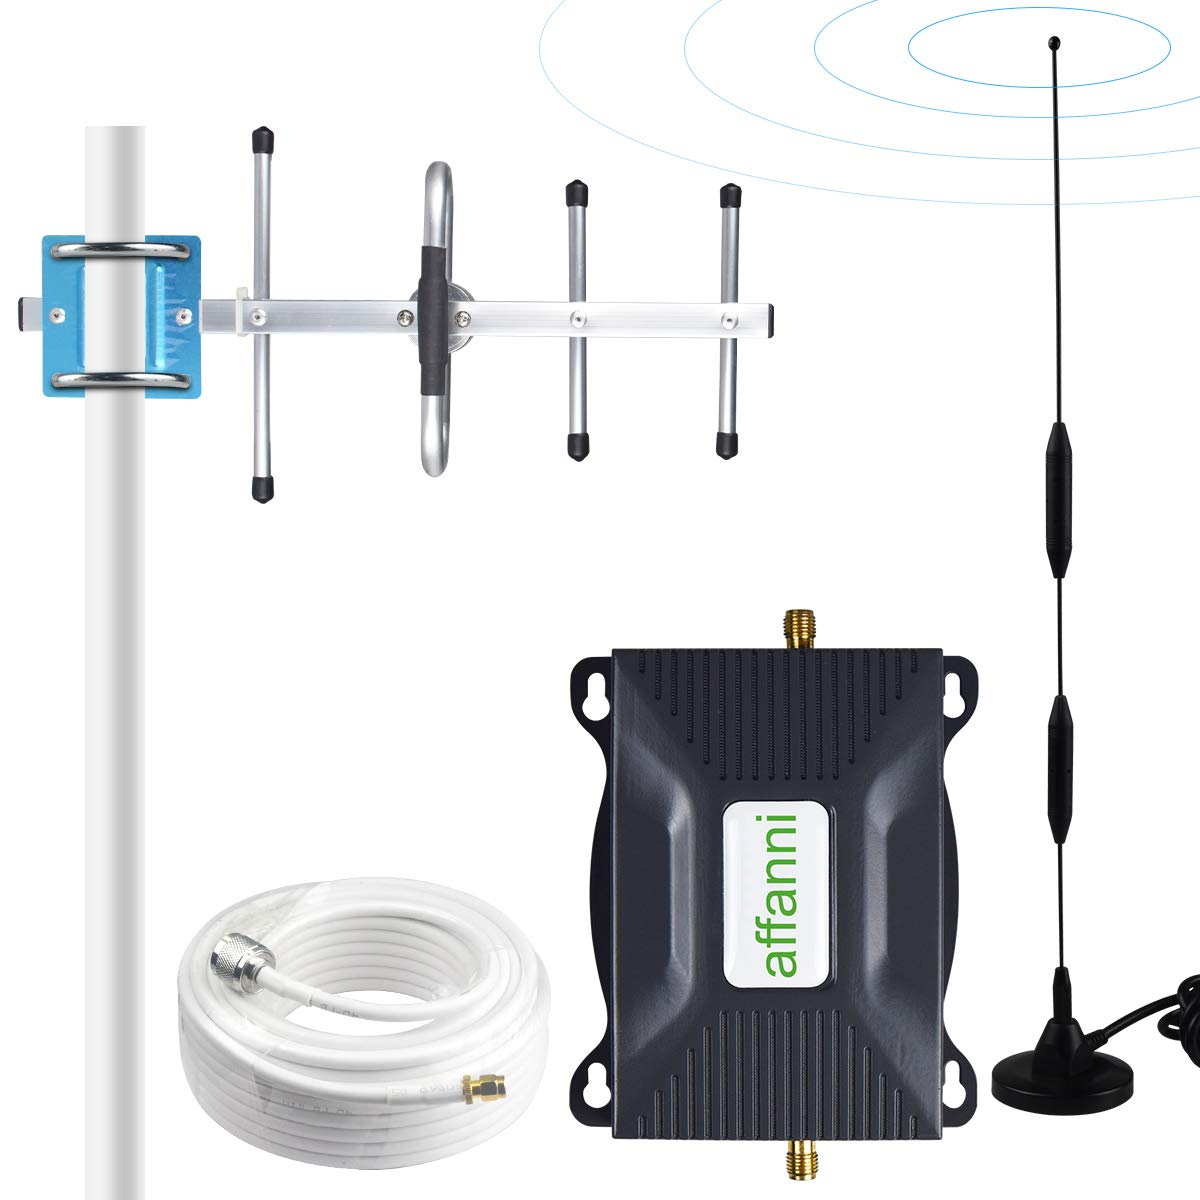 Cell Phone Signal Booster Verizon Cell Phone Booster for Home, Verizon Signal Booster 4G LTE Band13 700Mhz Home Cell Signal Booster Verizon Cell Phone Amplifier Cellular Repeater Boost Voice+Data